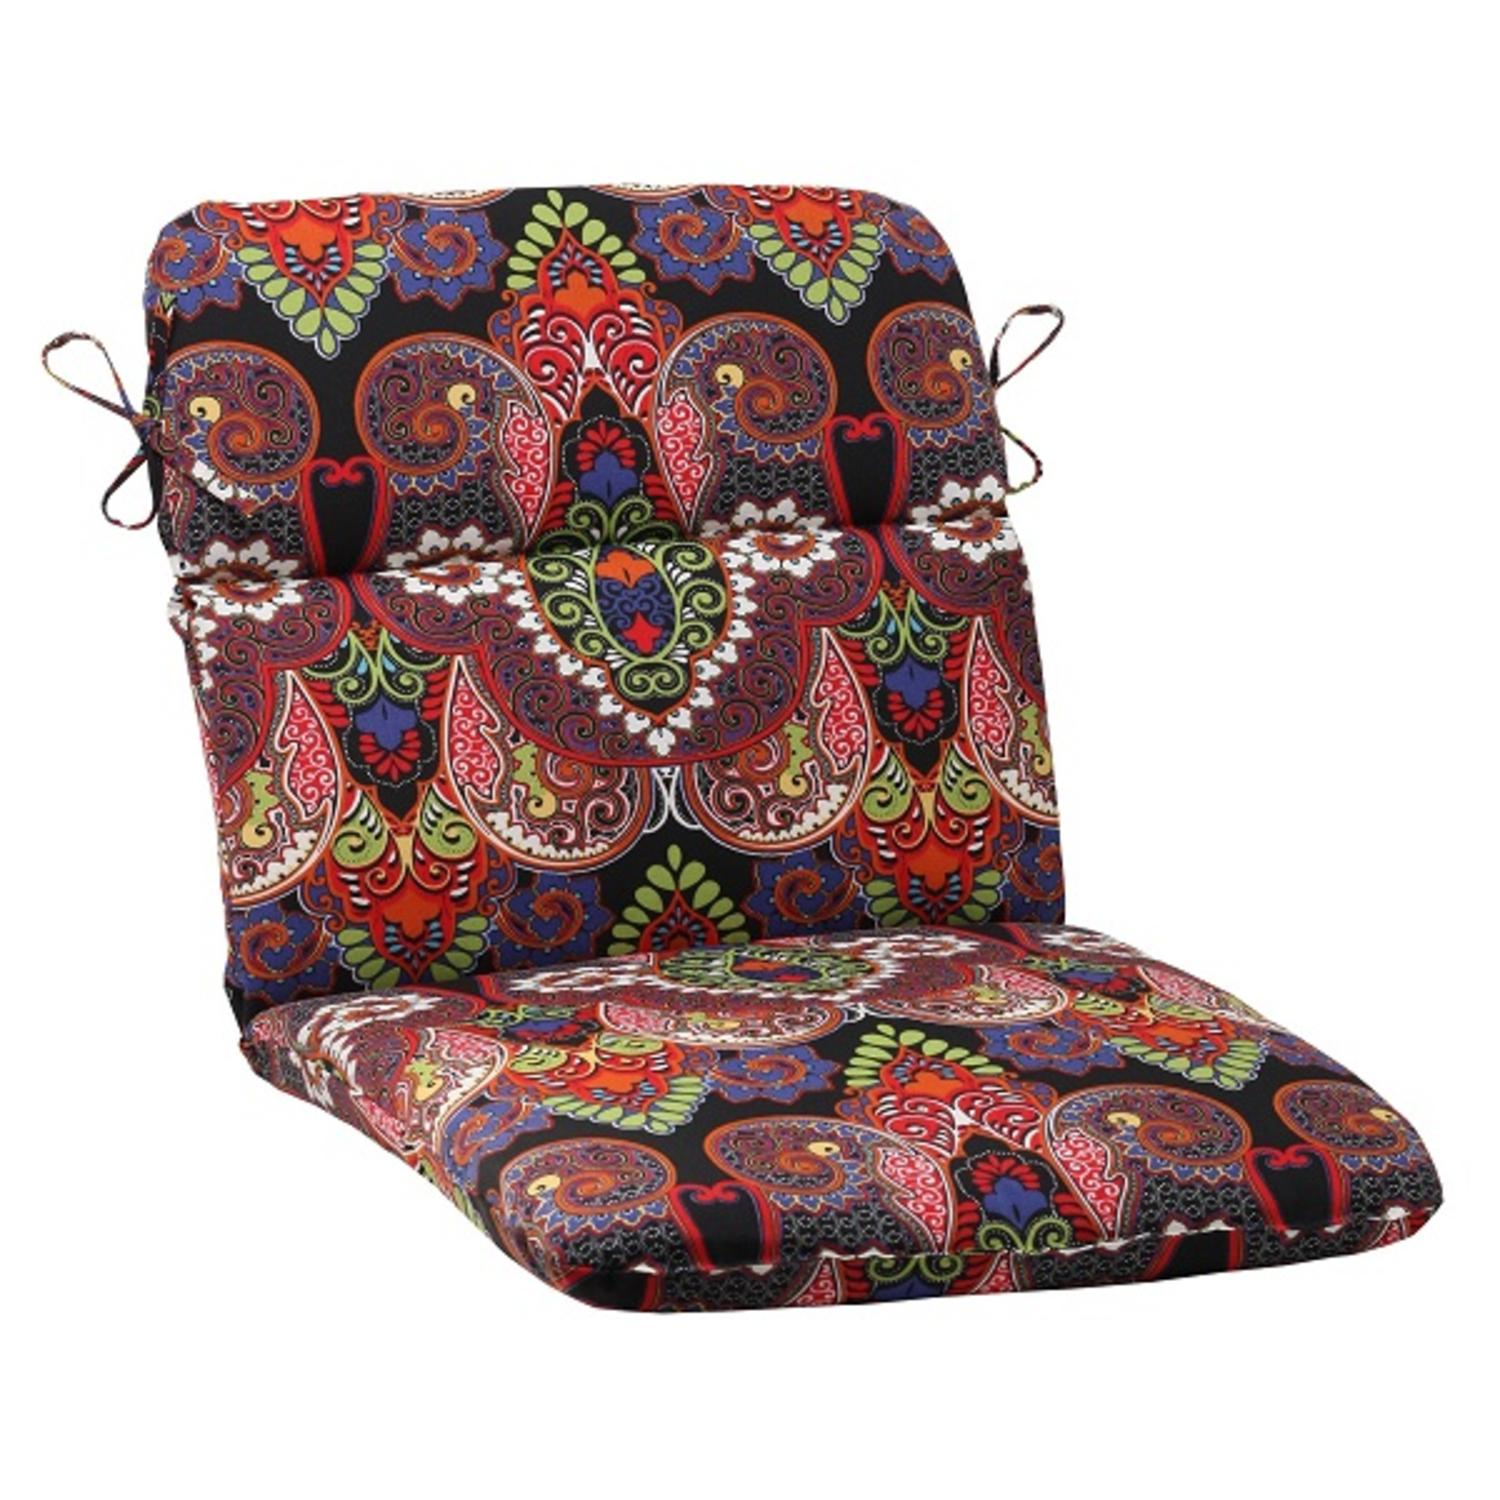 "40.5"" Black Floral Maze Outdoor Patio Rounded Chair Cushion with Ties"